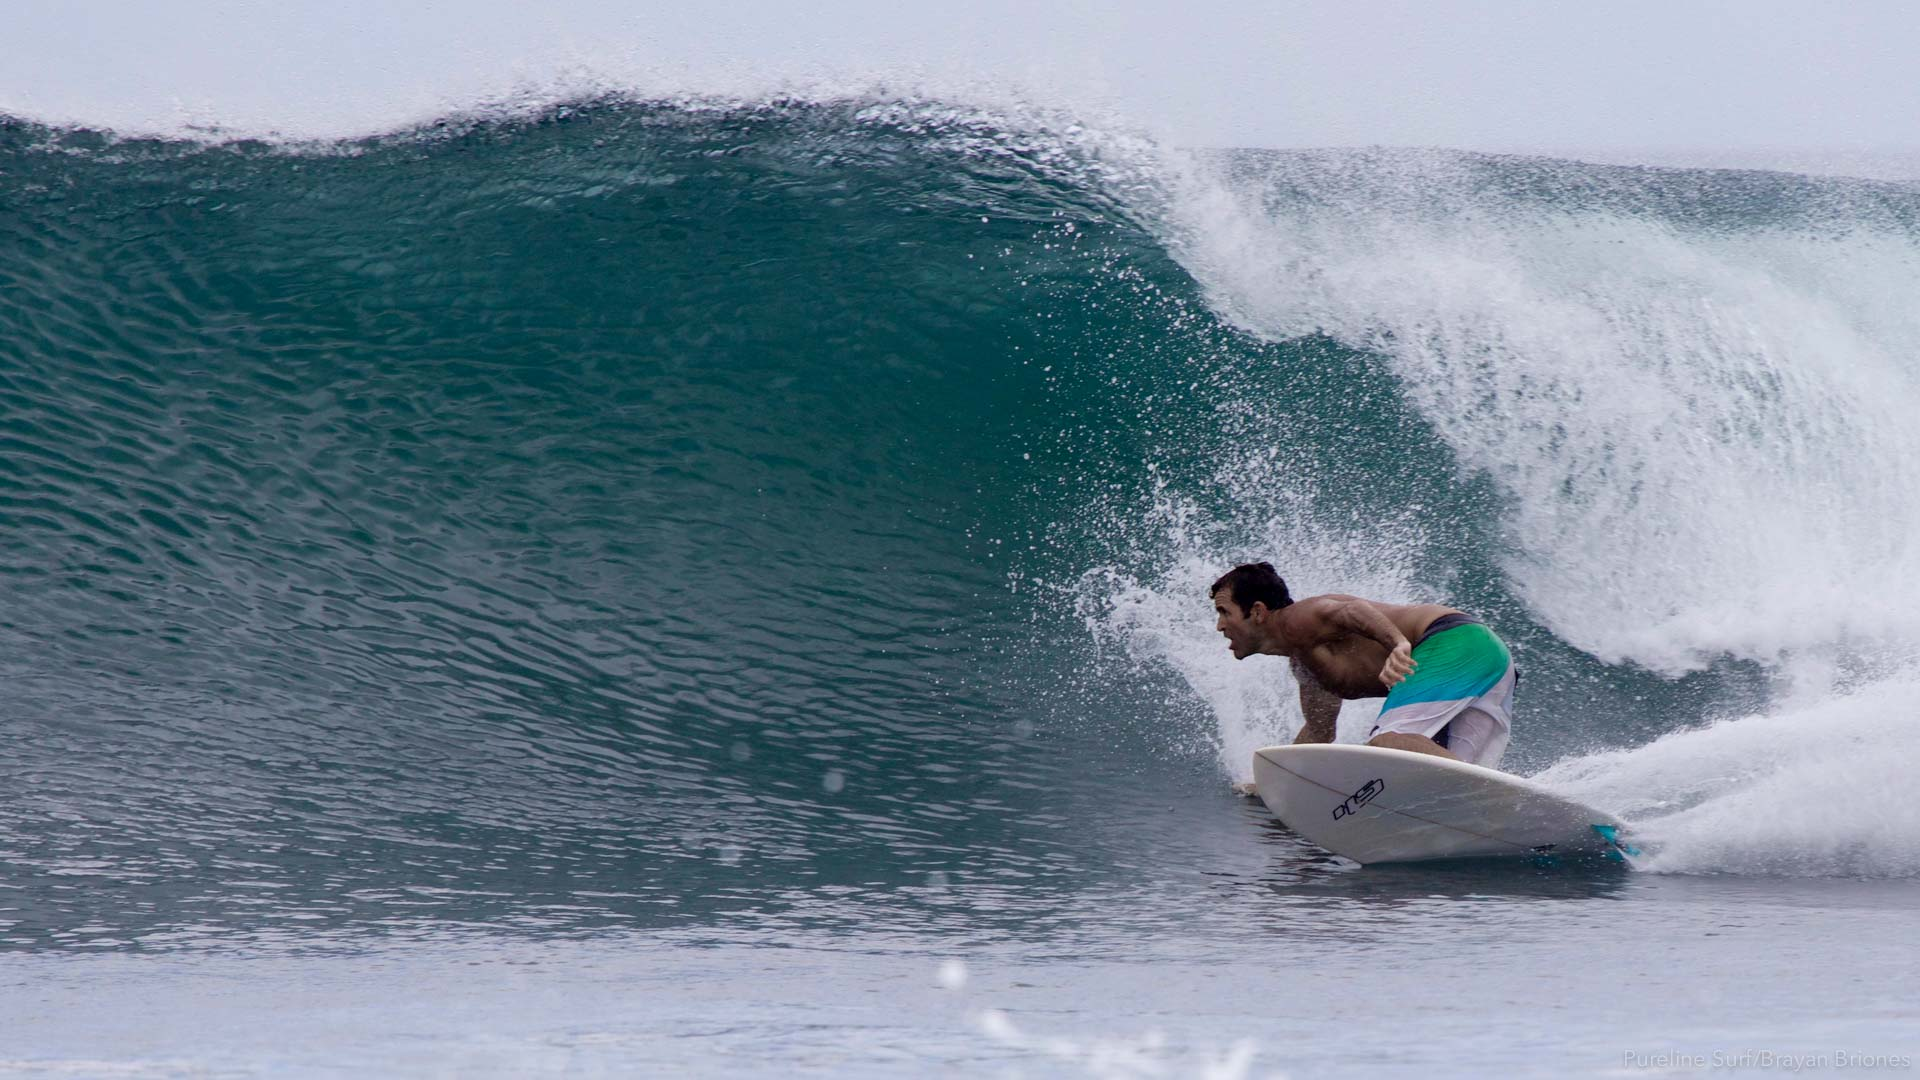 Ollies Point bottom turn. Costa Rican Surf Trips are never complete without a trip to Ollie's with Pureline Surf Coaching.